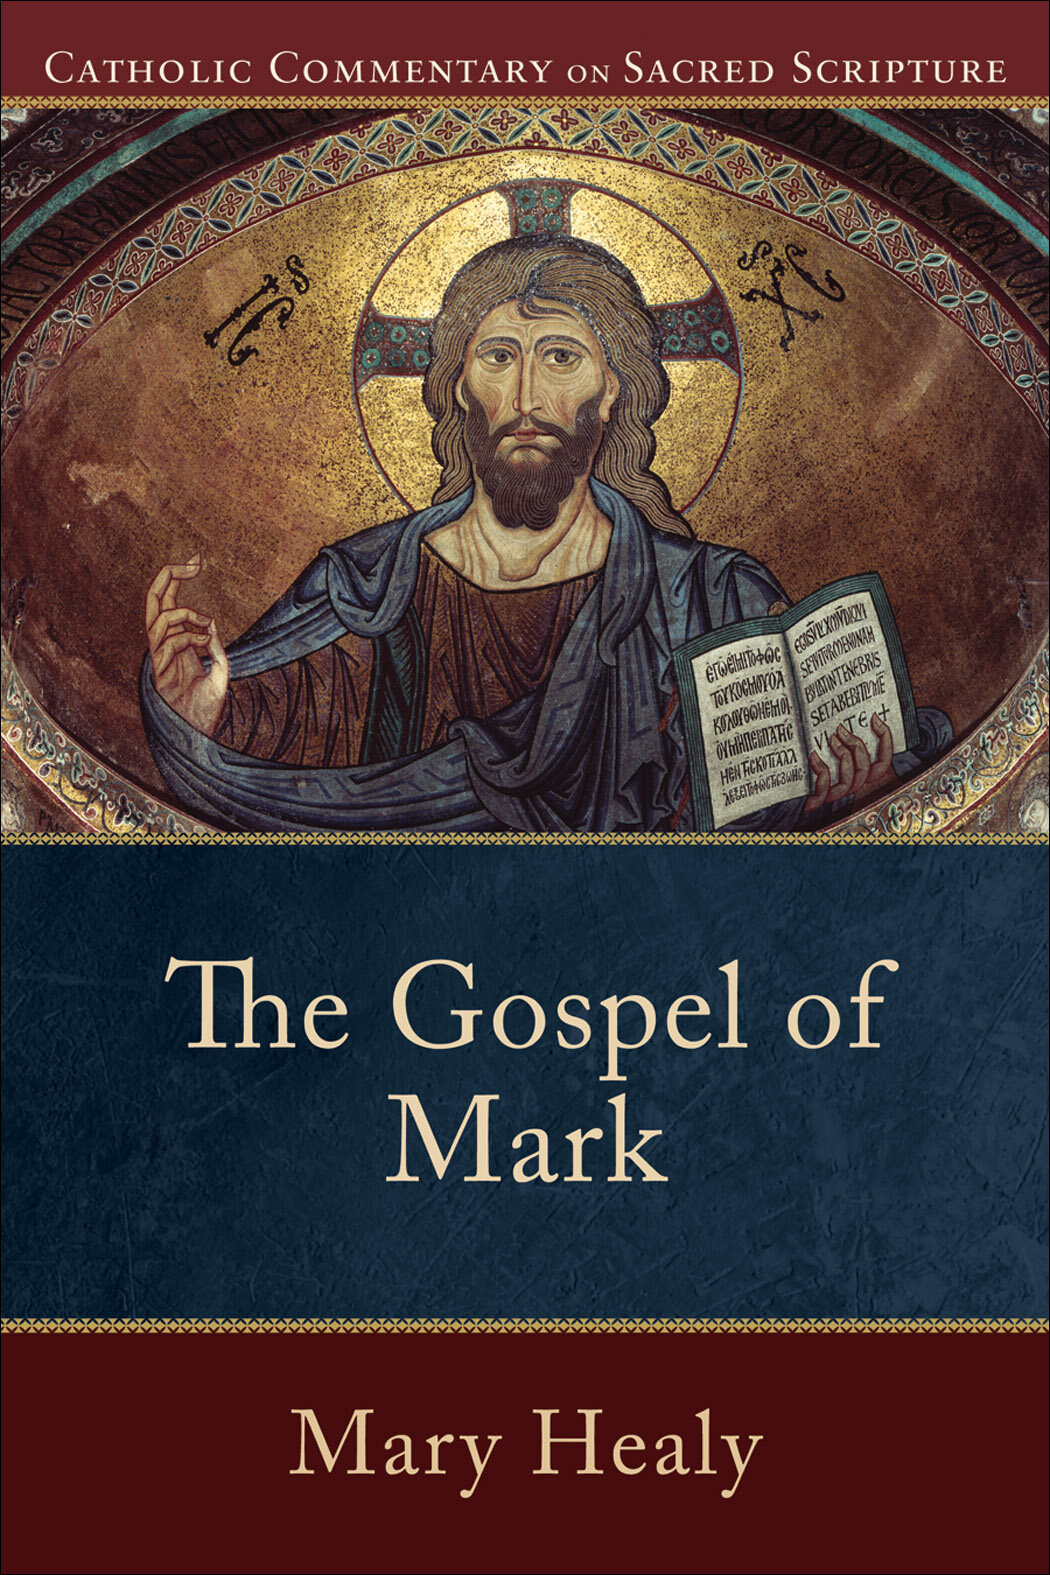 Catholic Commentary on Sacred Scripture: The Gospel of Mark